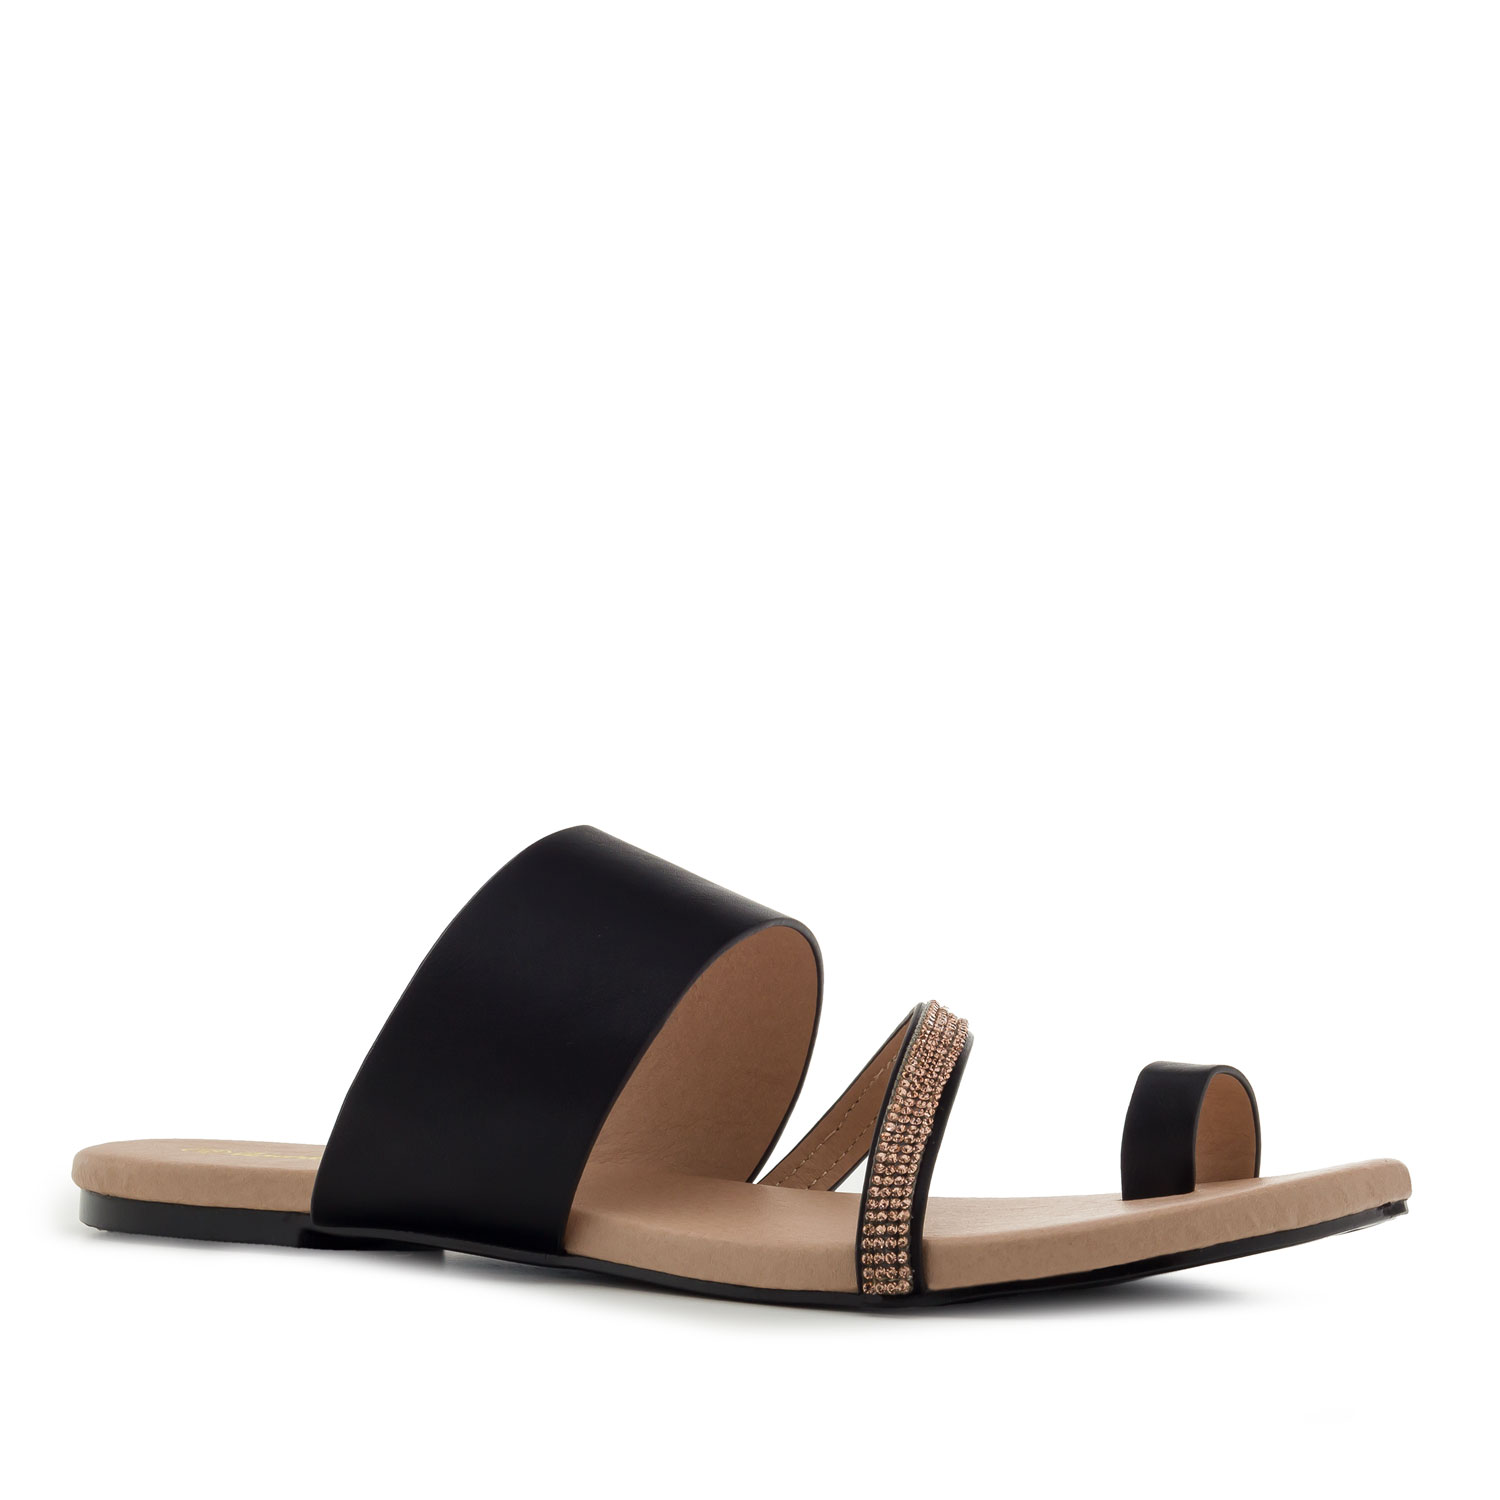 Toe Flat Sandals in Black faux Leather